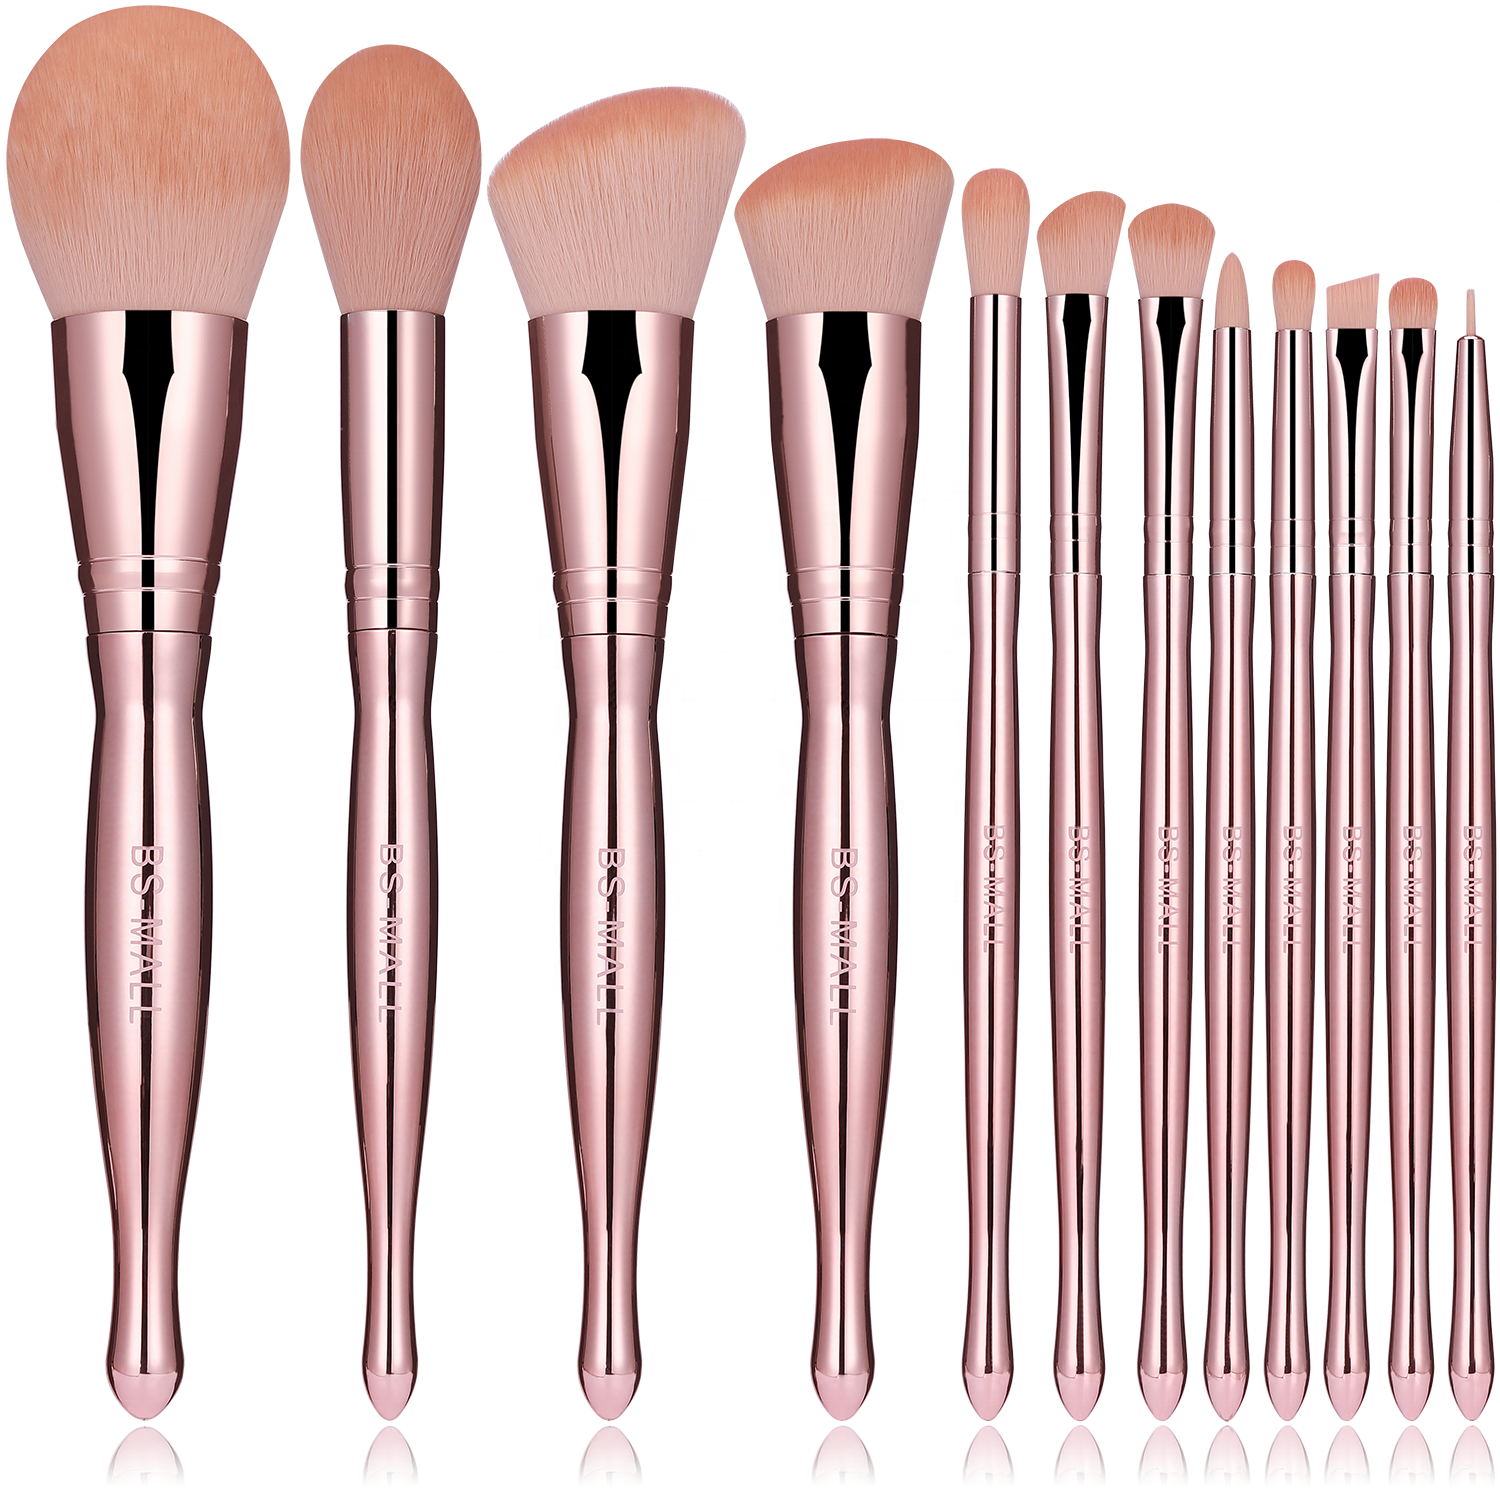 2020 Baru Make Up Sikat Brochas Maquillajes Rose Gold 12Pcs Ramah Lingkungan Makeup Brushes Makeup Kustom Sikat